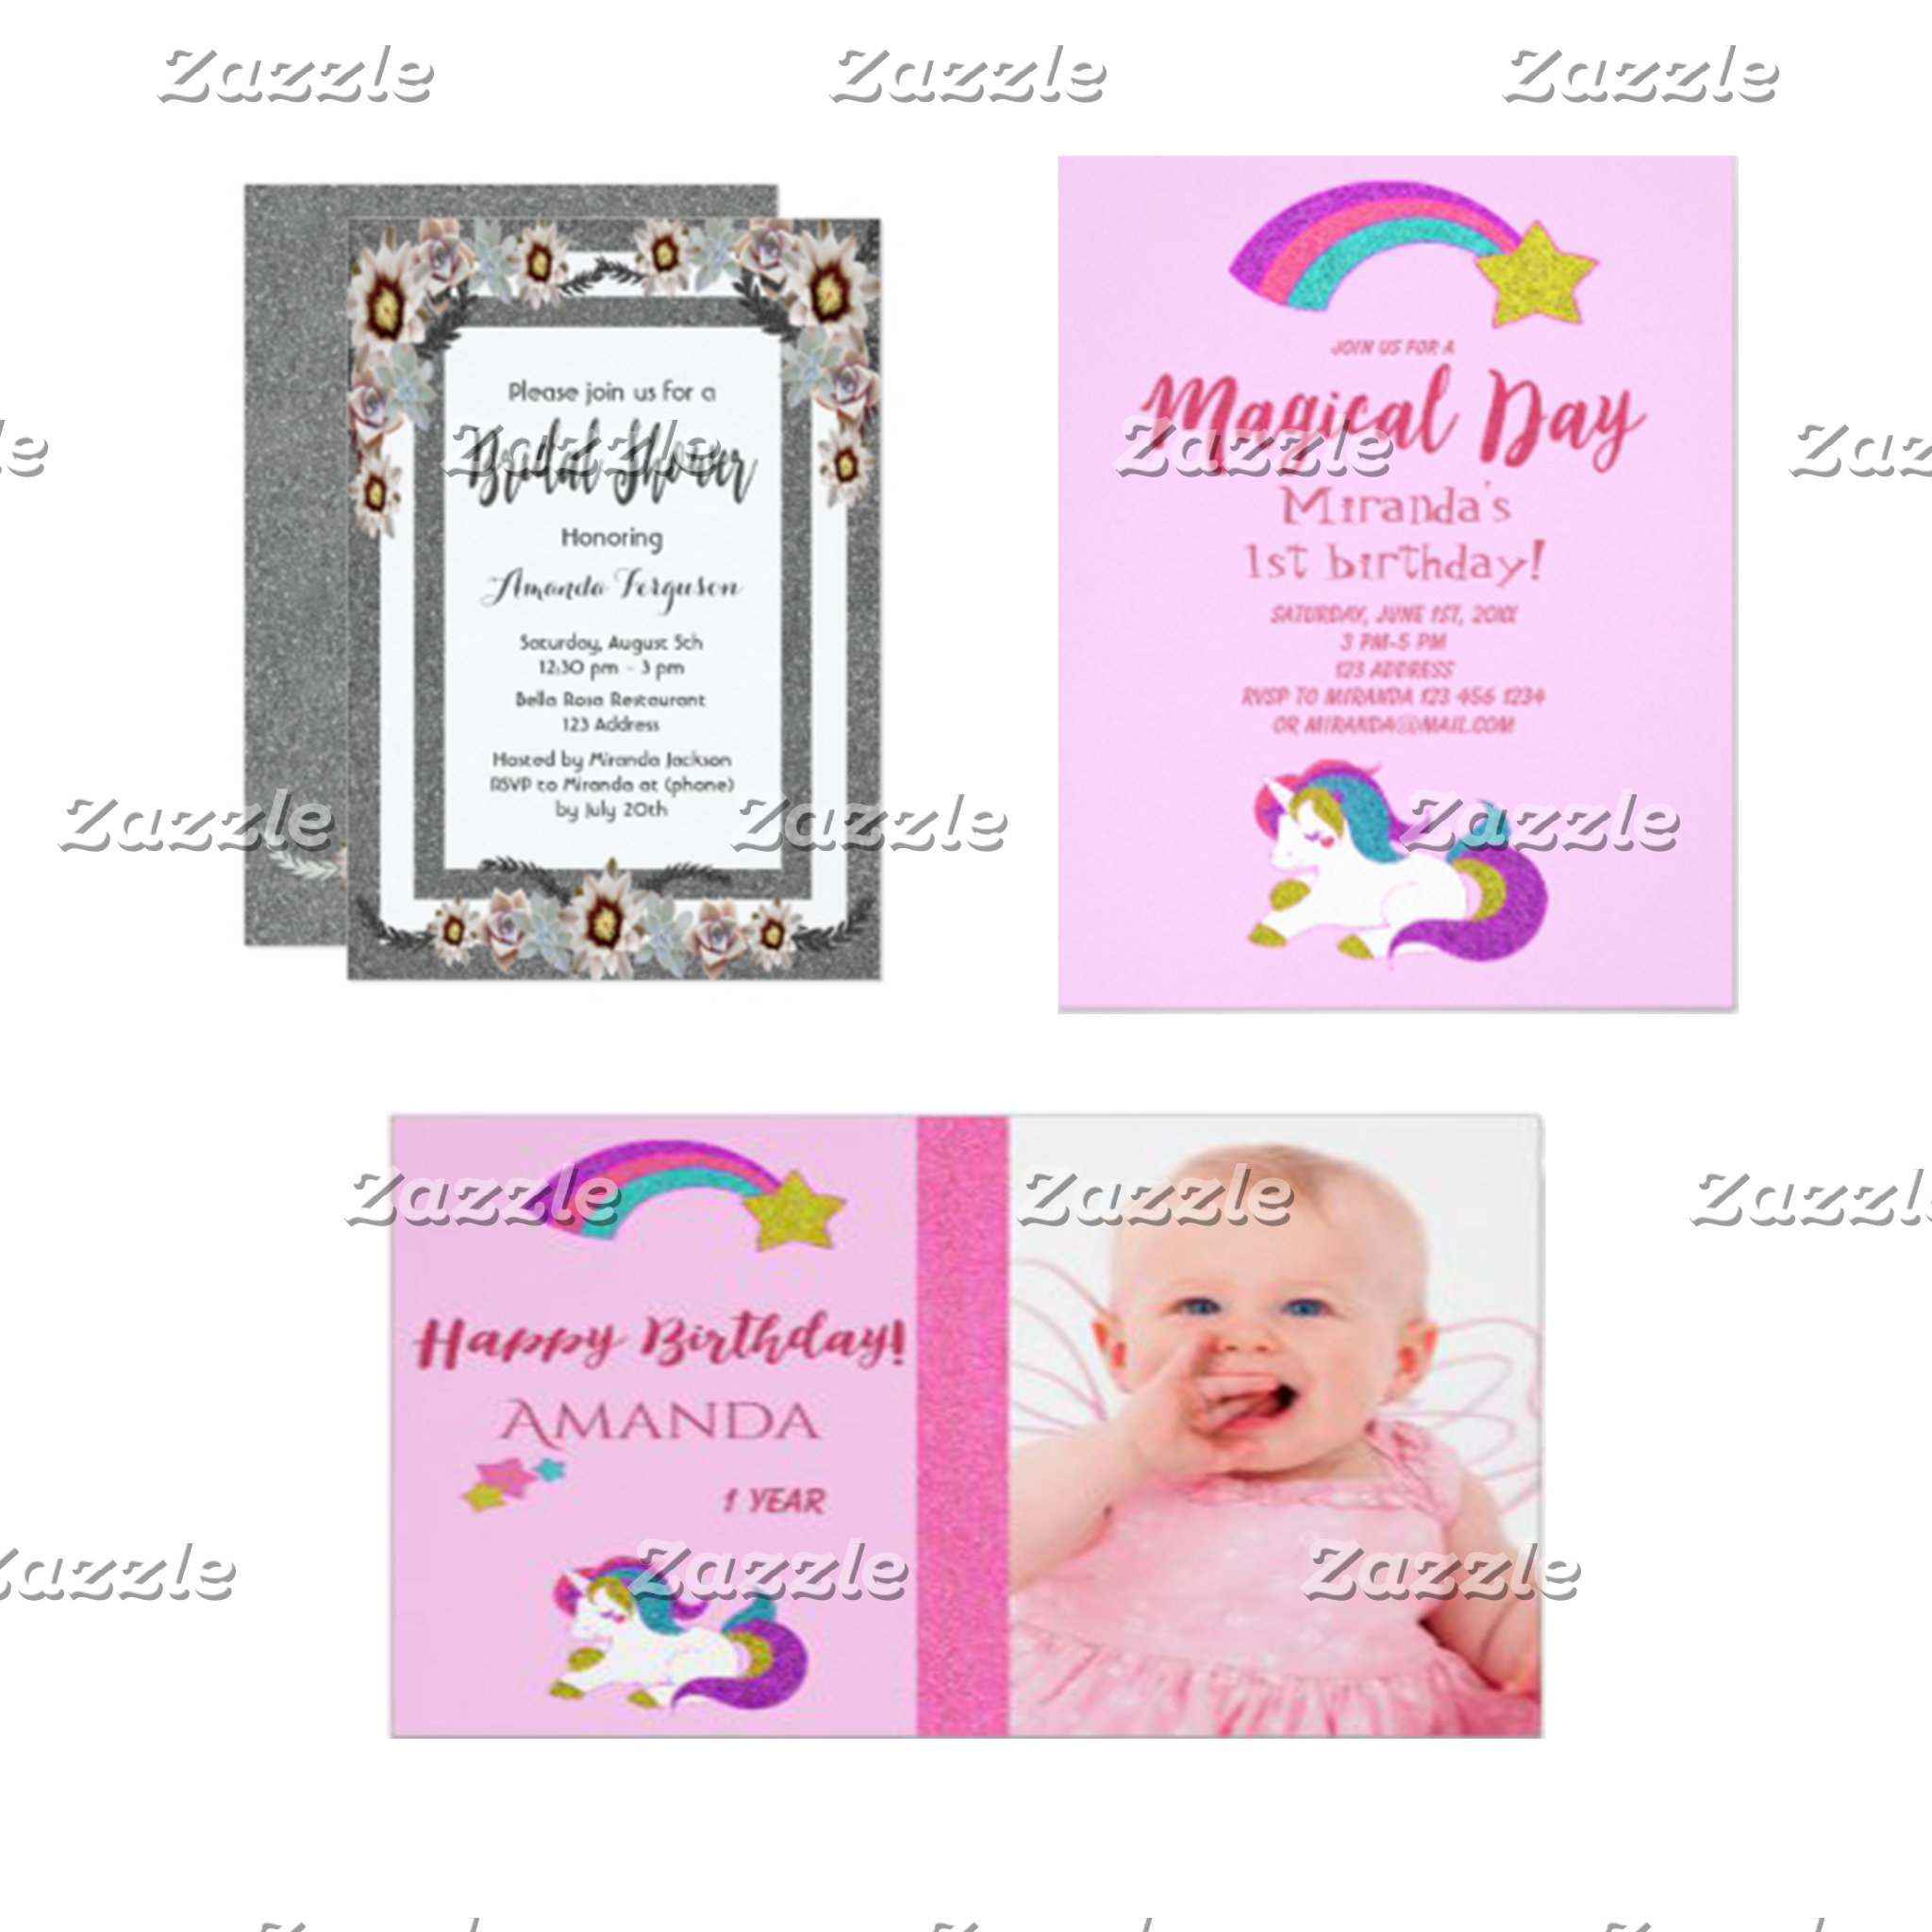 Cards, invitations and postage